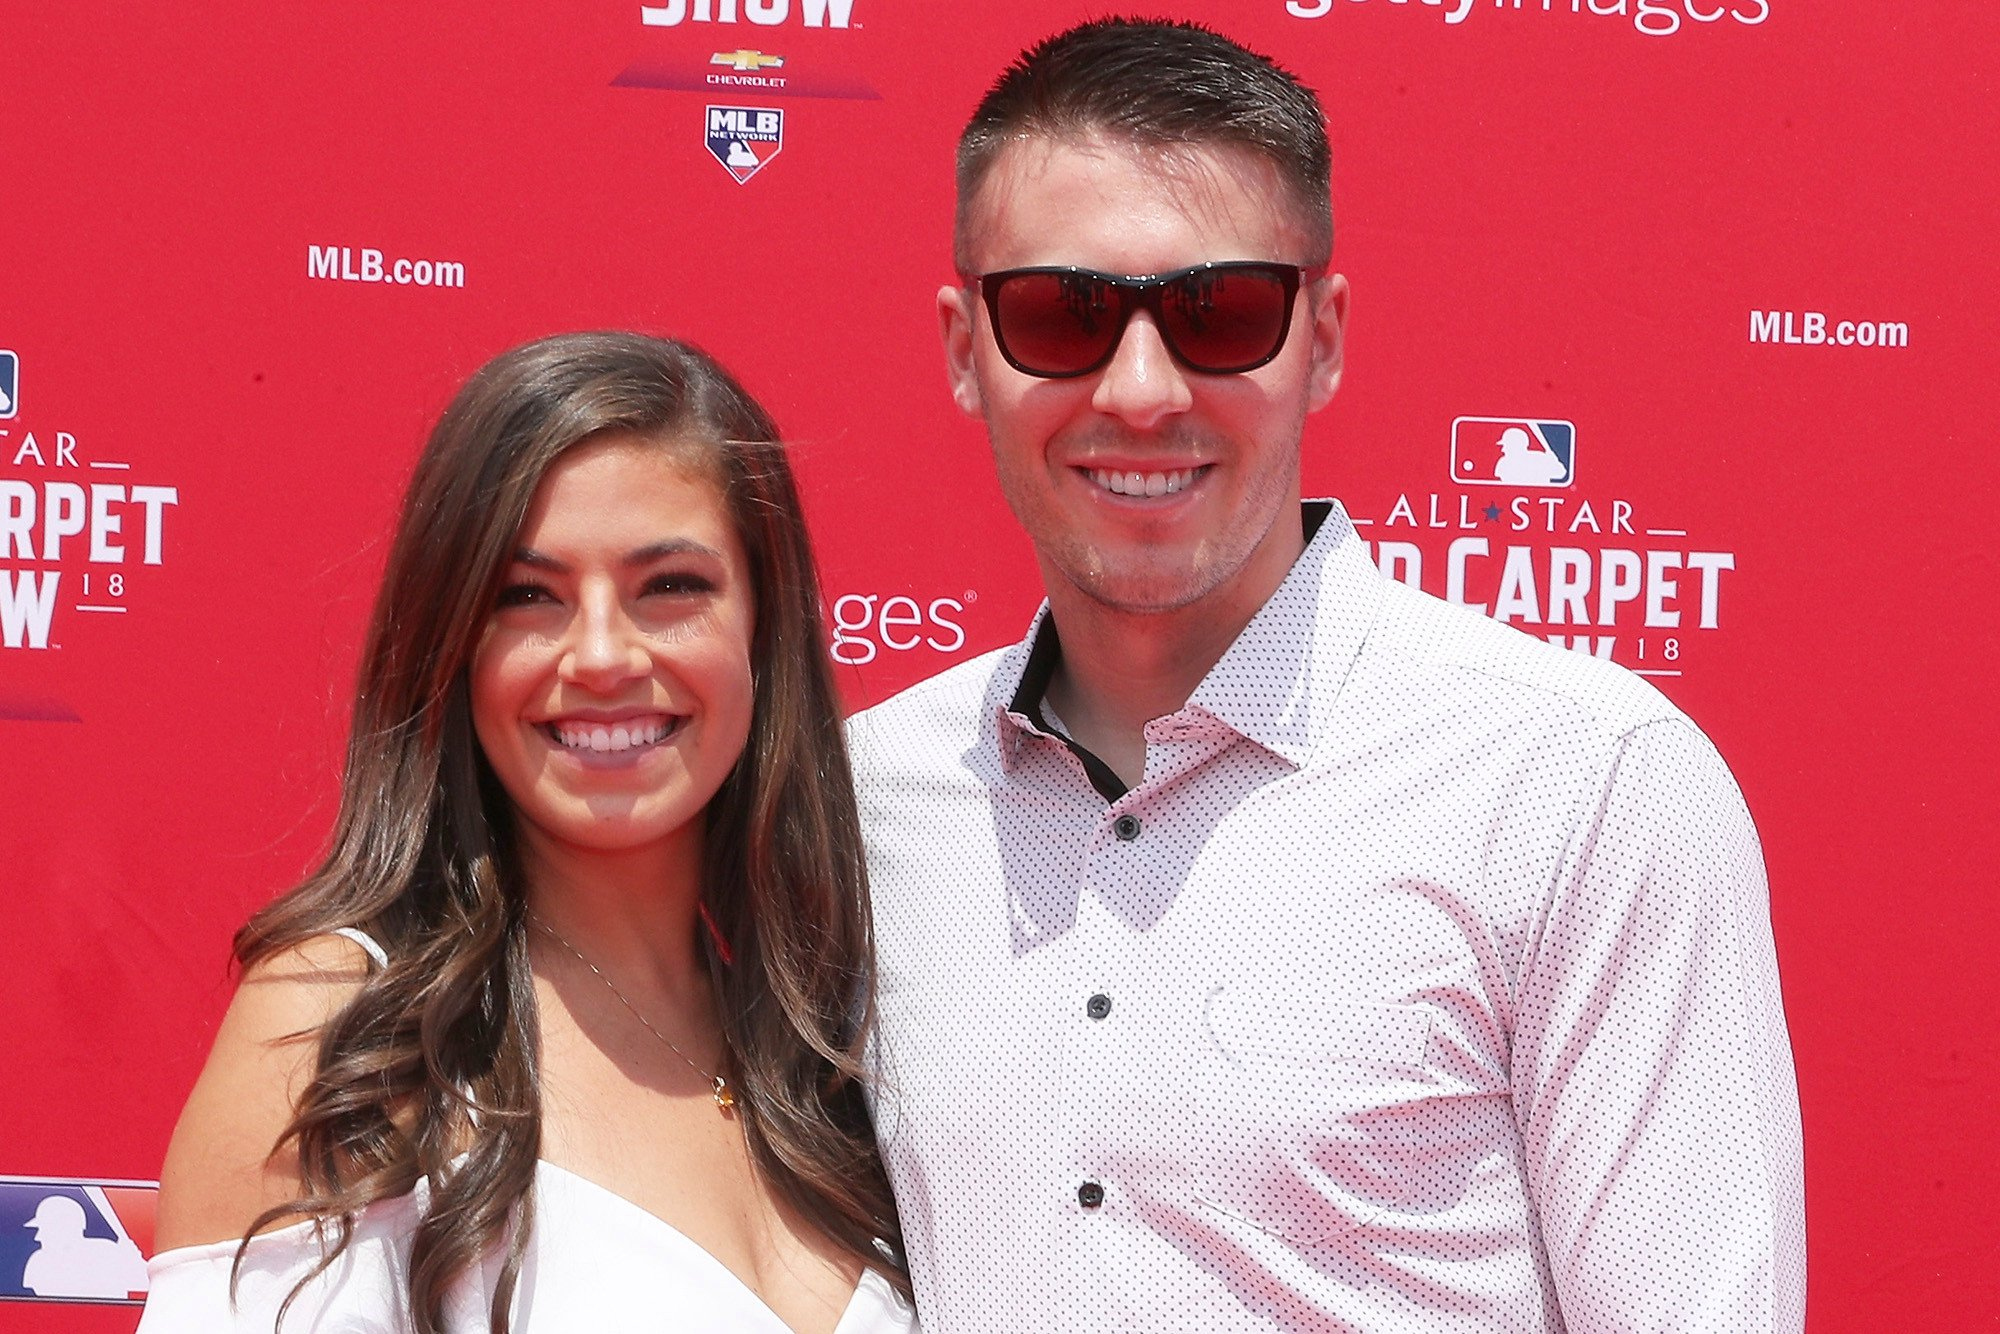 How Patrick Corbin stole wife's heart before breaking Yankees'